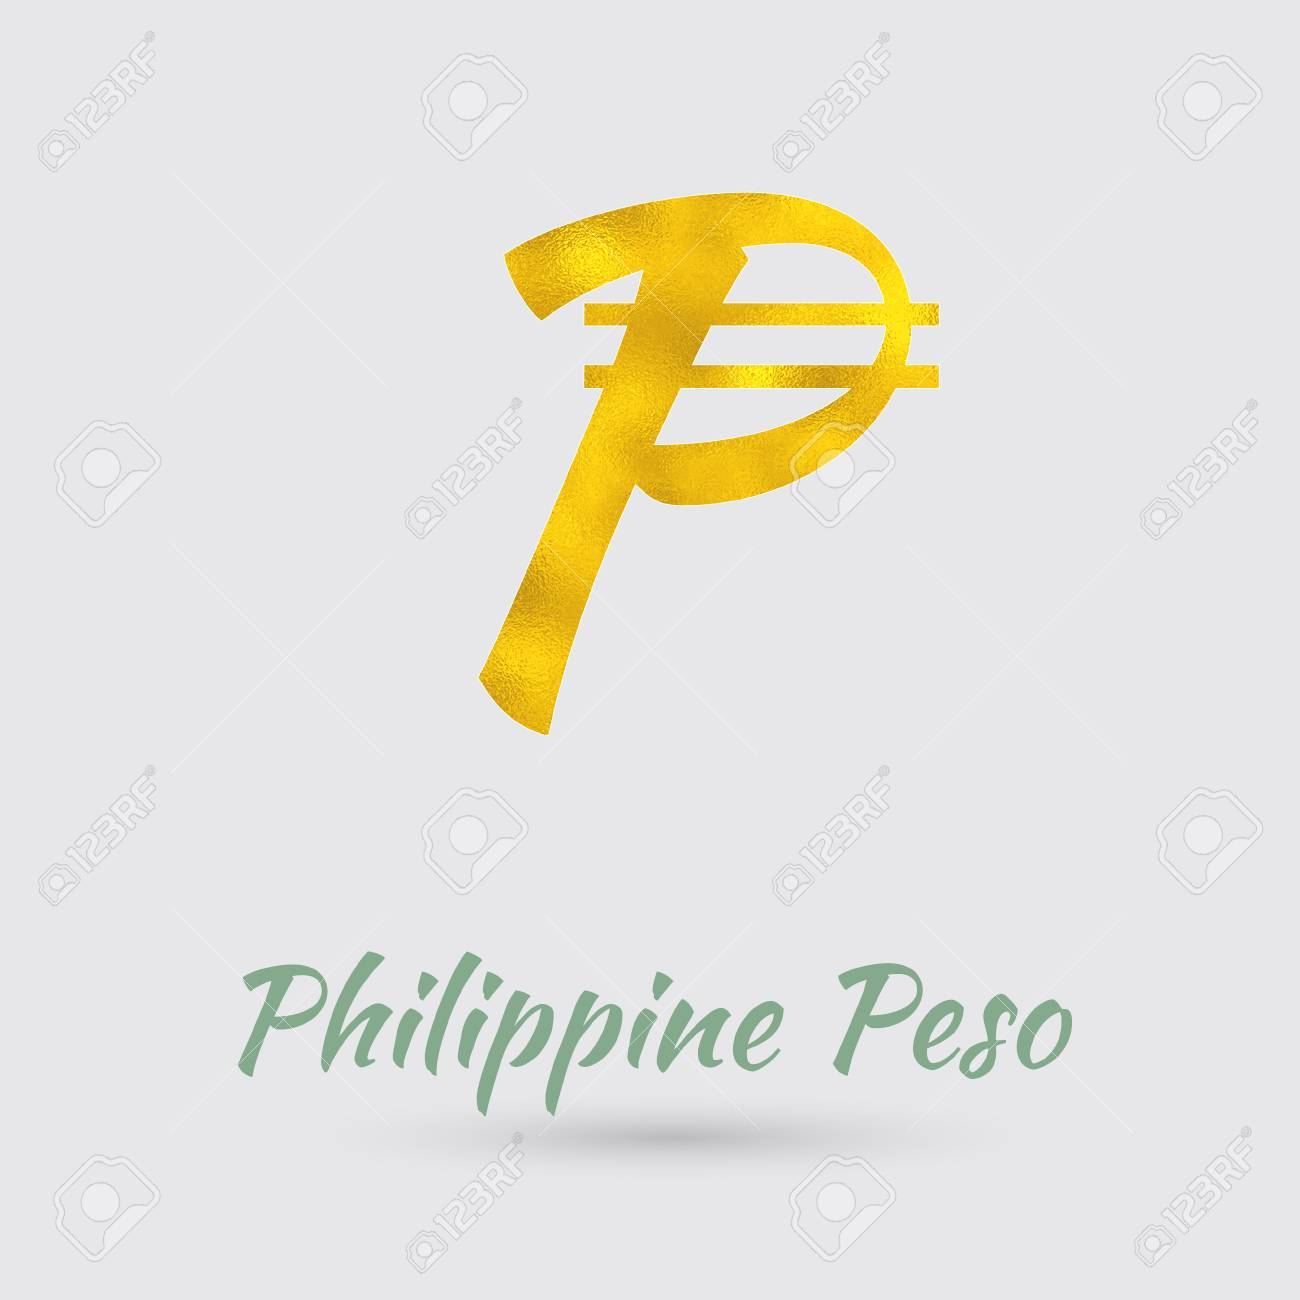 Symbol Of The Philippine Peso Currency With Golden Texture Text